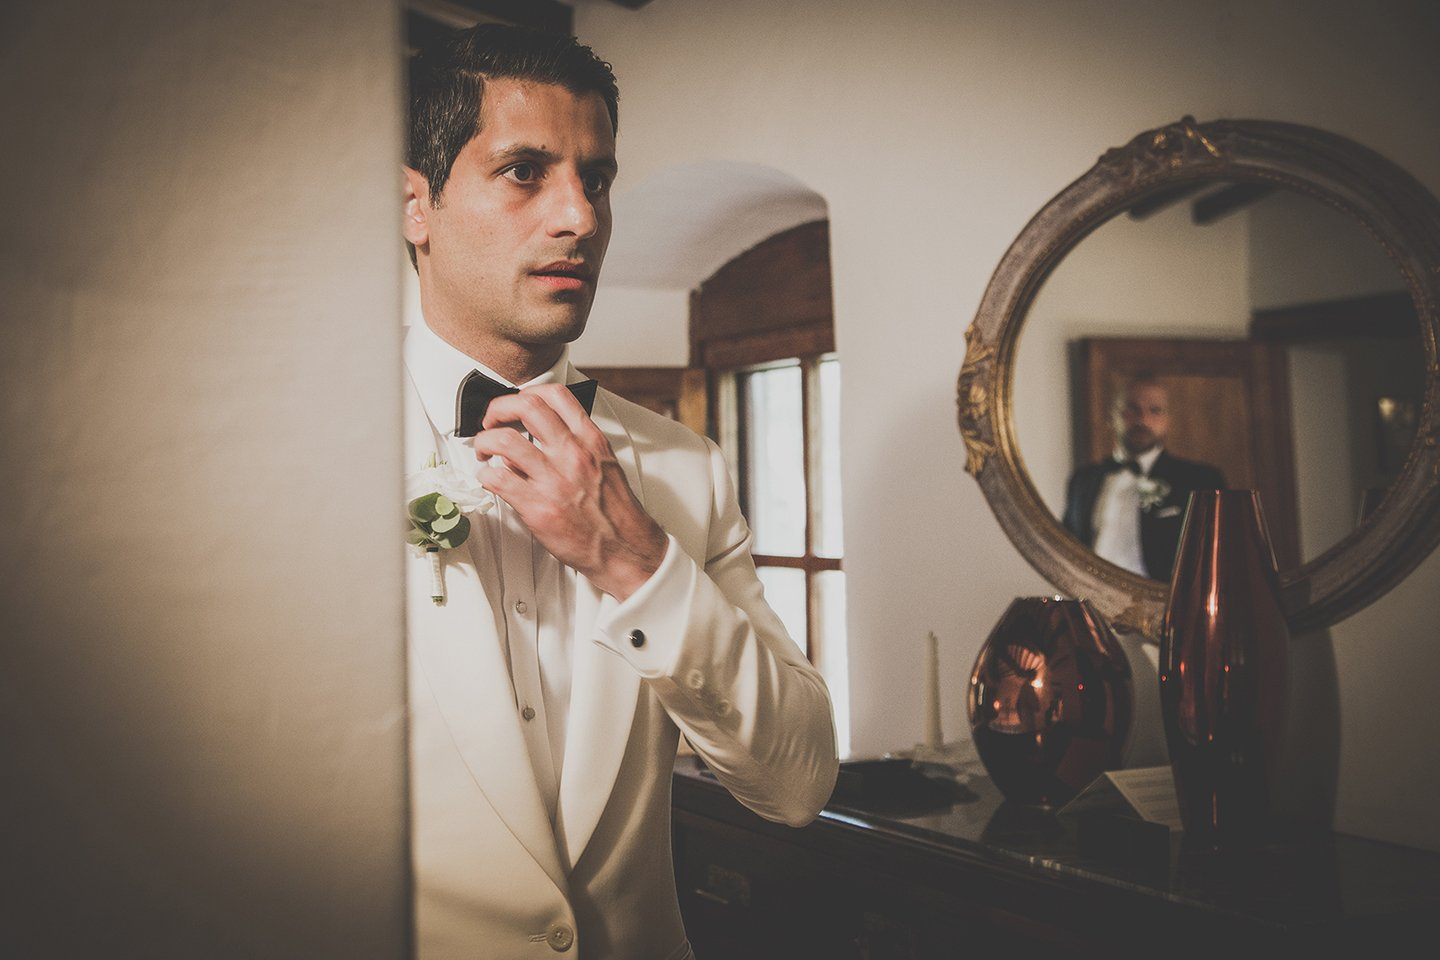 iranian-groom-white-jacket-getting-ready-vignamaggio-tuscany-